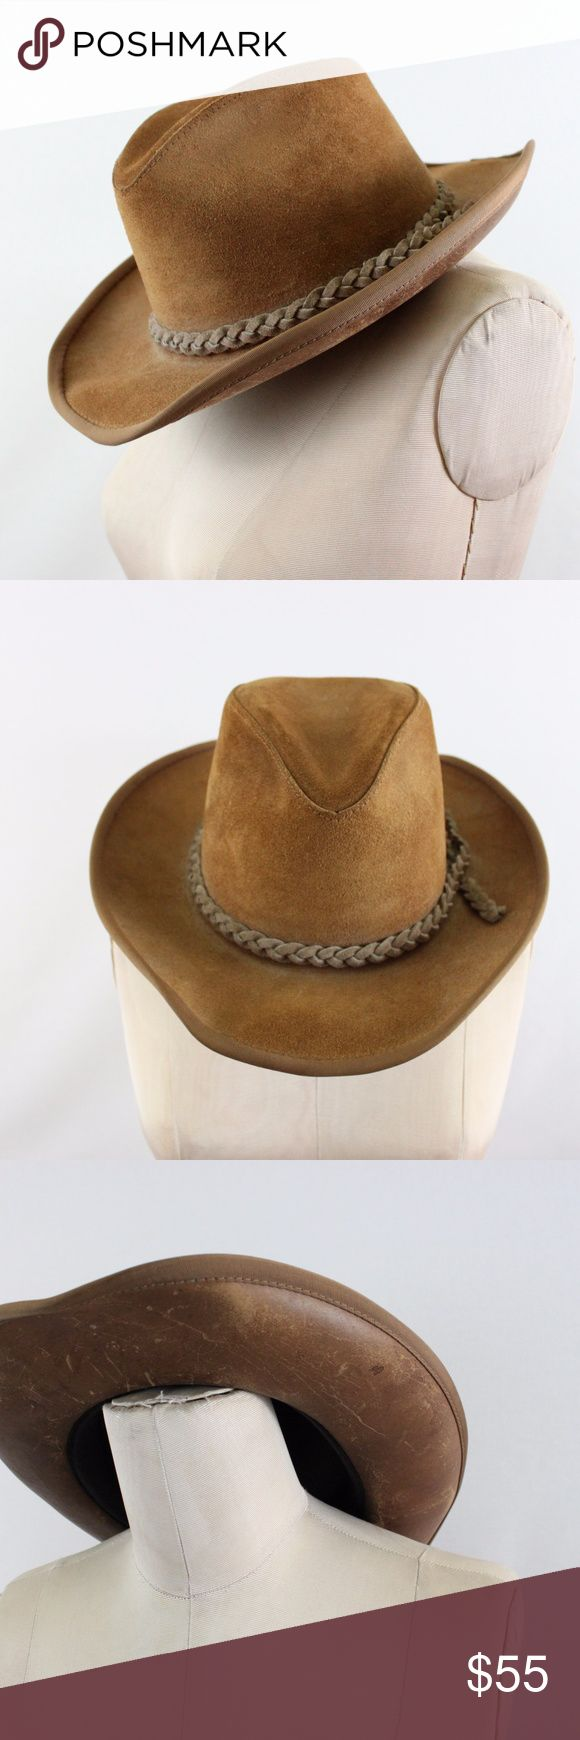 Vintage leather cowboy hat | XL Excellent vintage leather cowboy hat  XL Accessories Hats